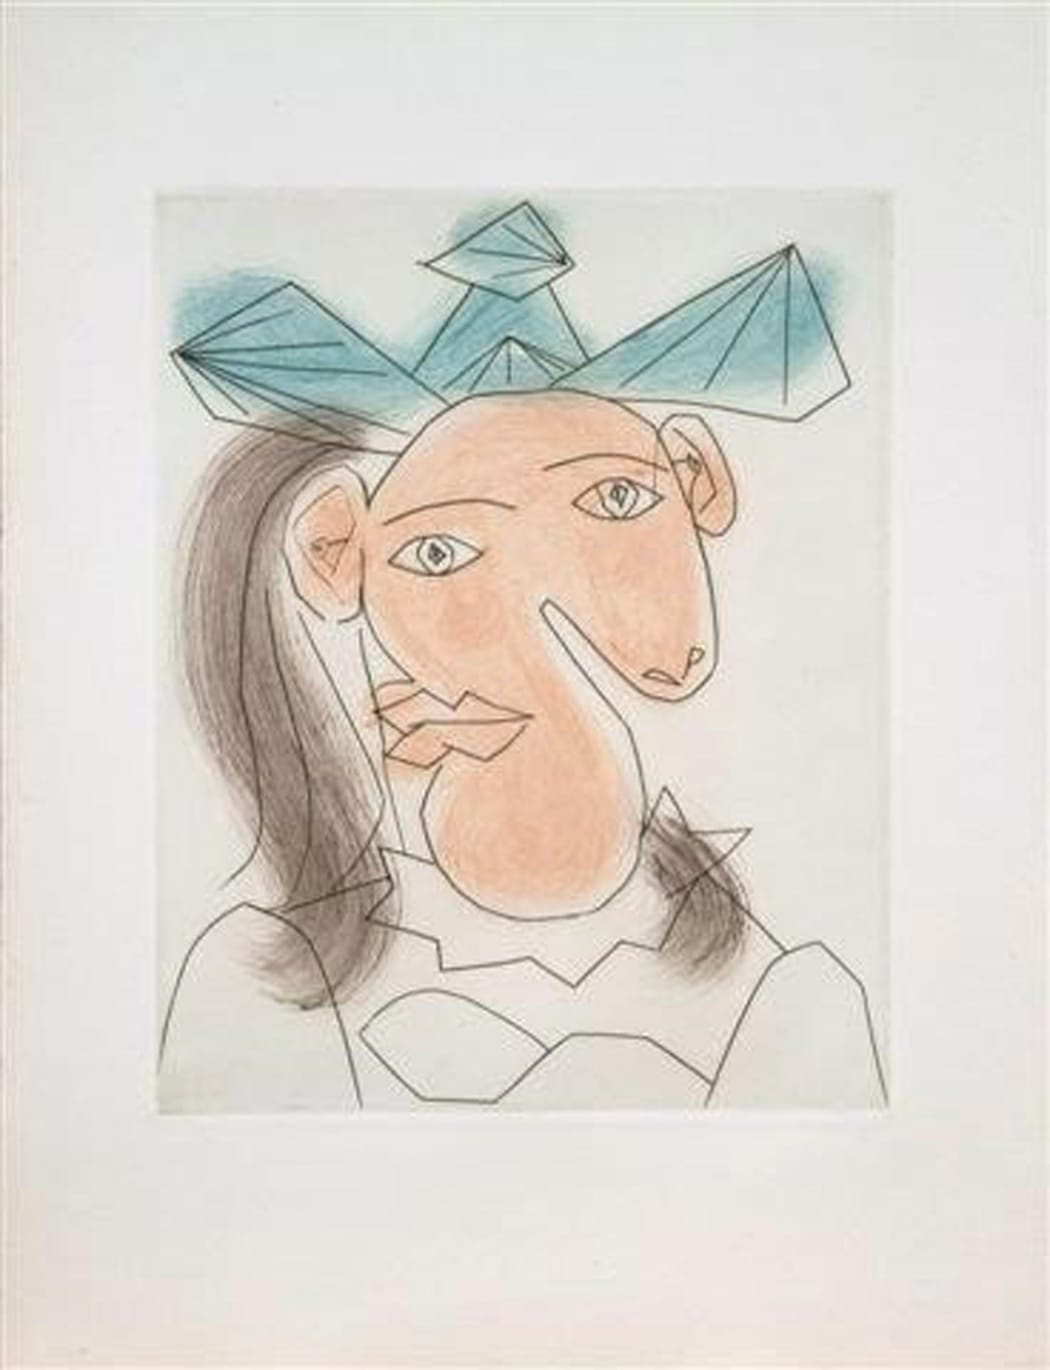 Tète de femme No. 7. Portrait de Dora Maar(B1336), 1939, aquatint, 17 1/2 x 13 1/4 inches